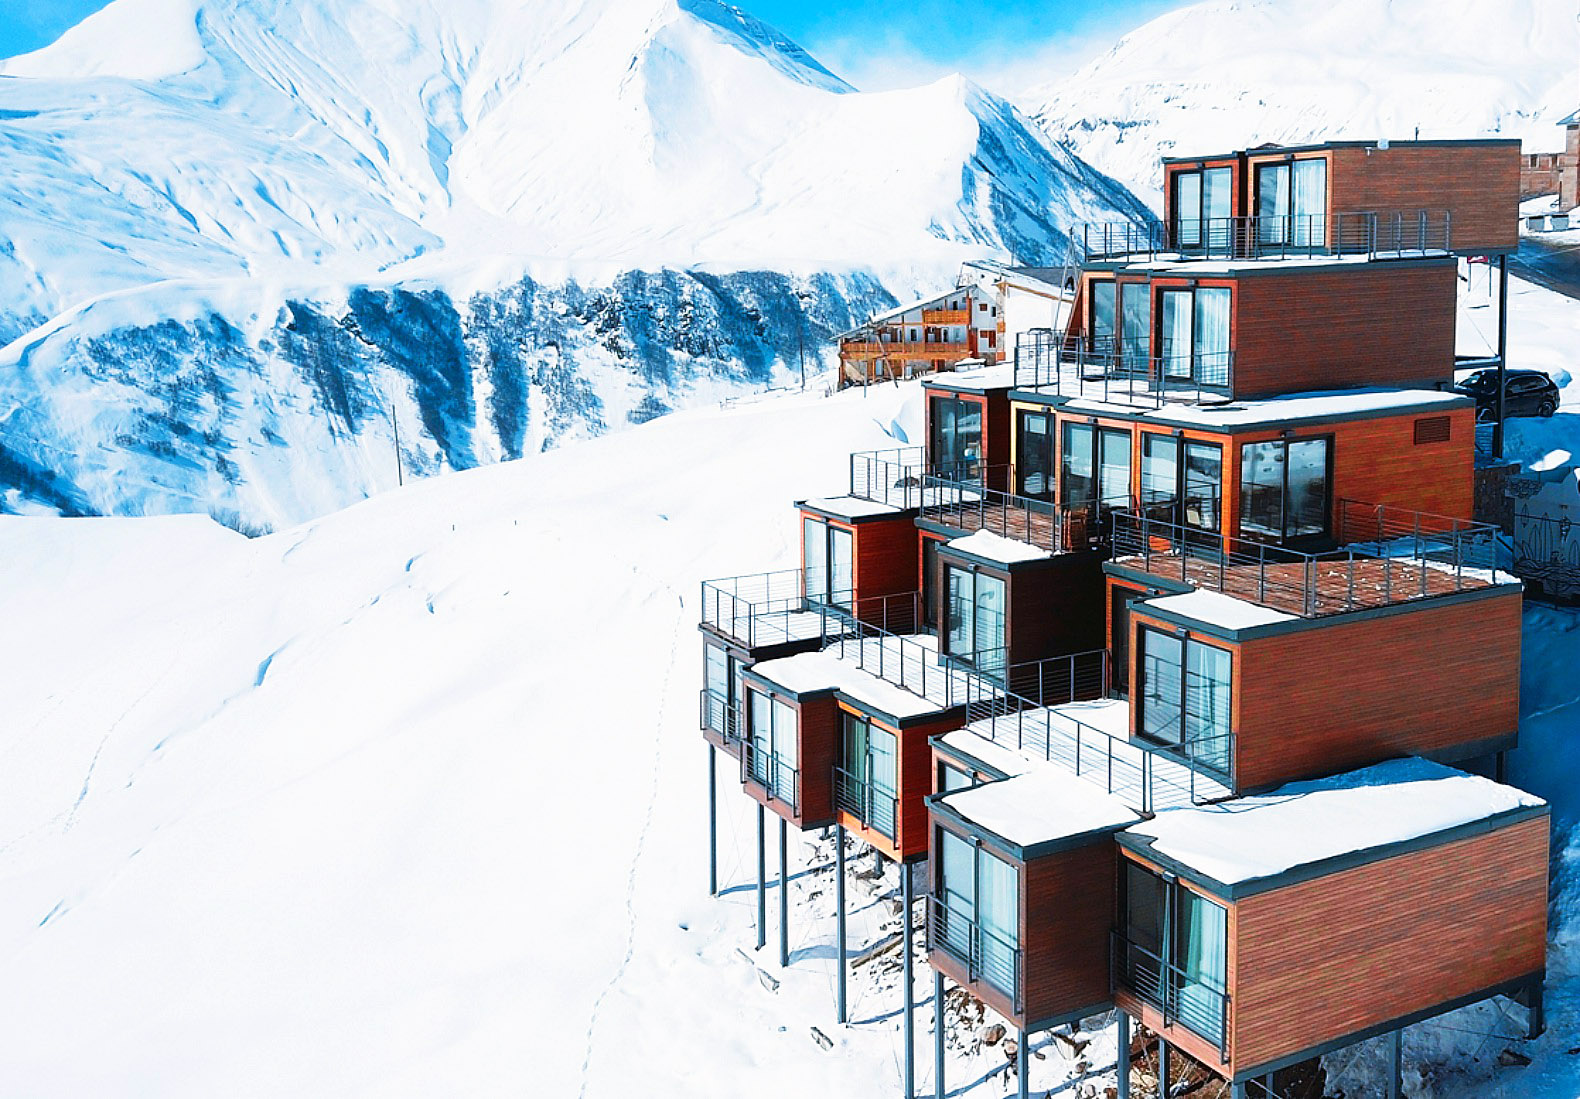 Shipping container architecture inhabitat green design for Design hotel ski